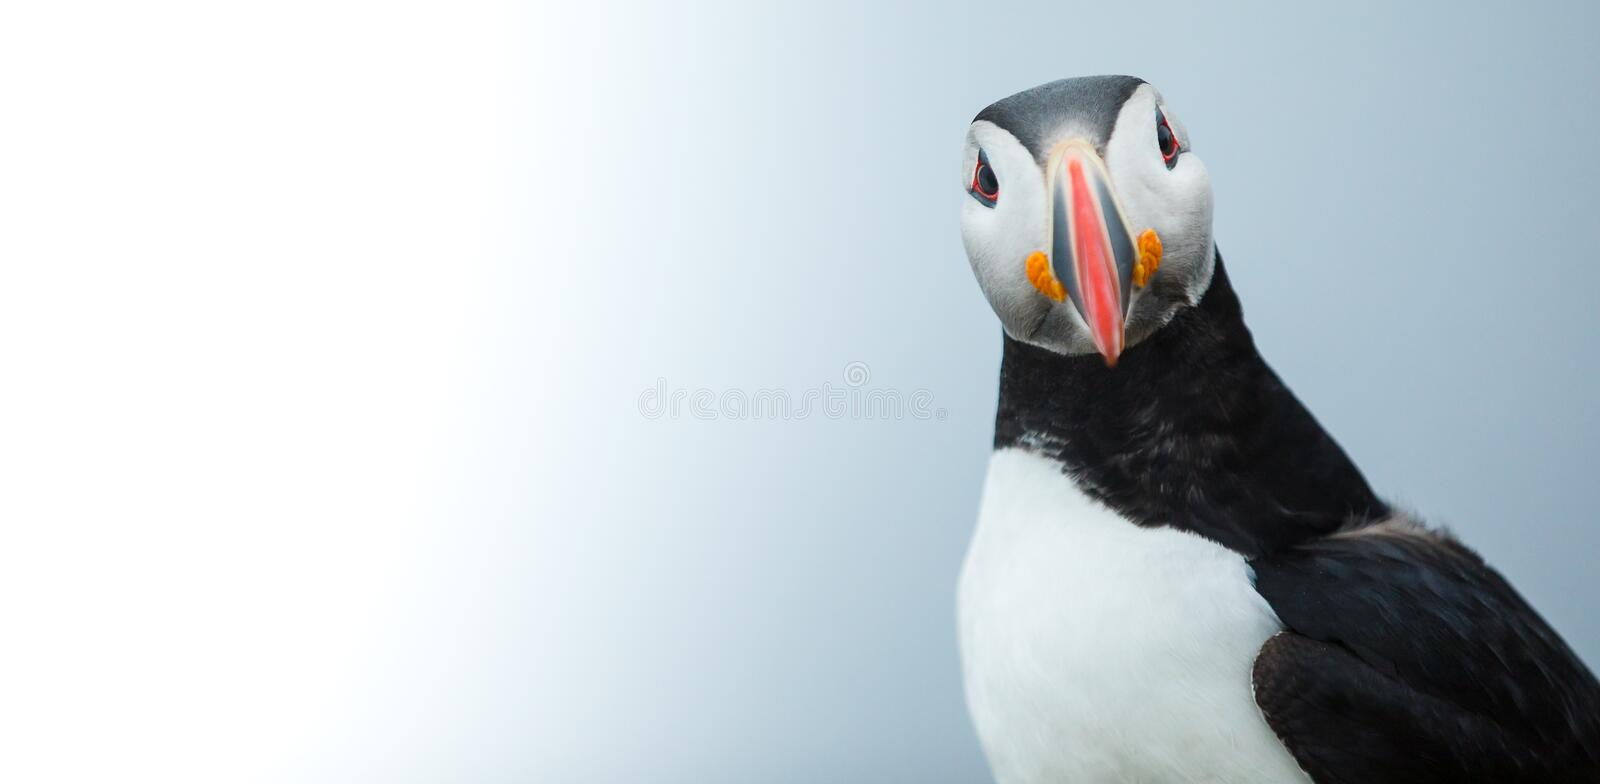 Puffin on the rocks at latrabjarg Iceland. Puffin on the rocks at latrabjarg Iceland, close-up stock photography